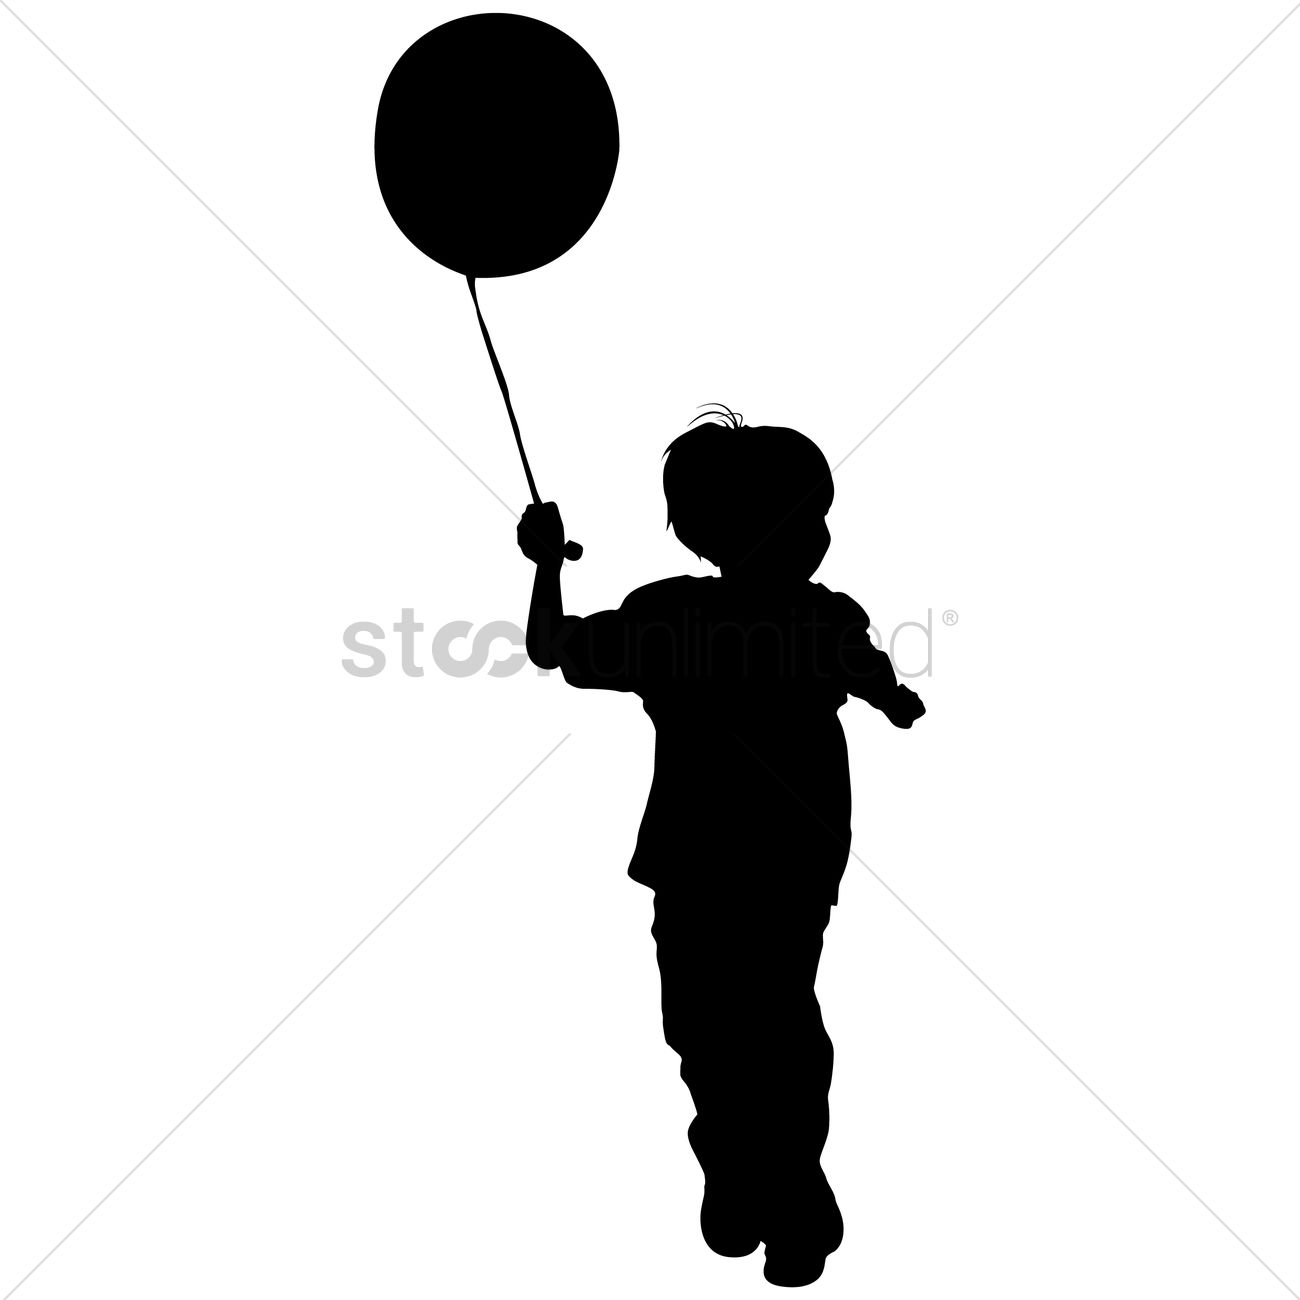 1300x1300 Silhouette Of A Boy Playing With Balloon Vector Image